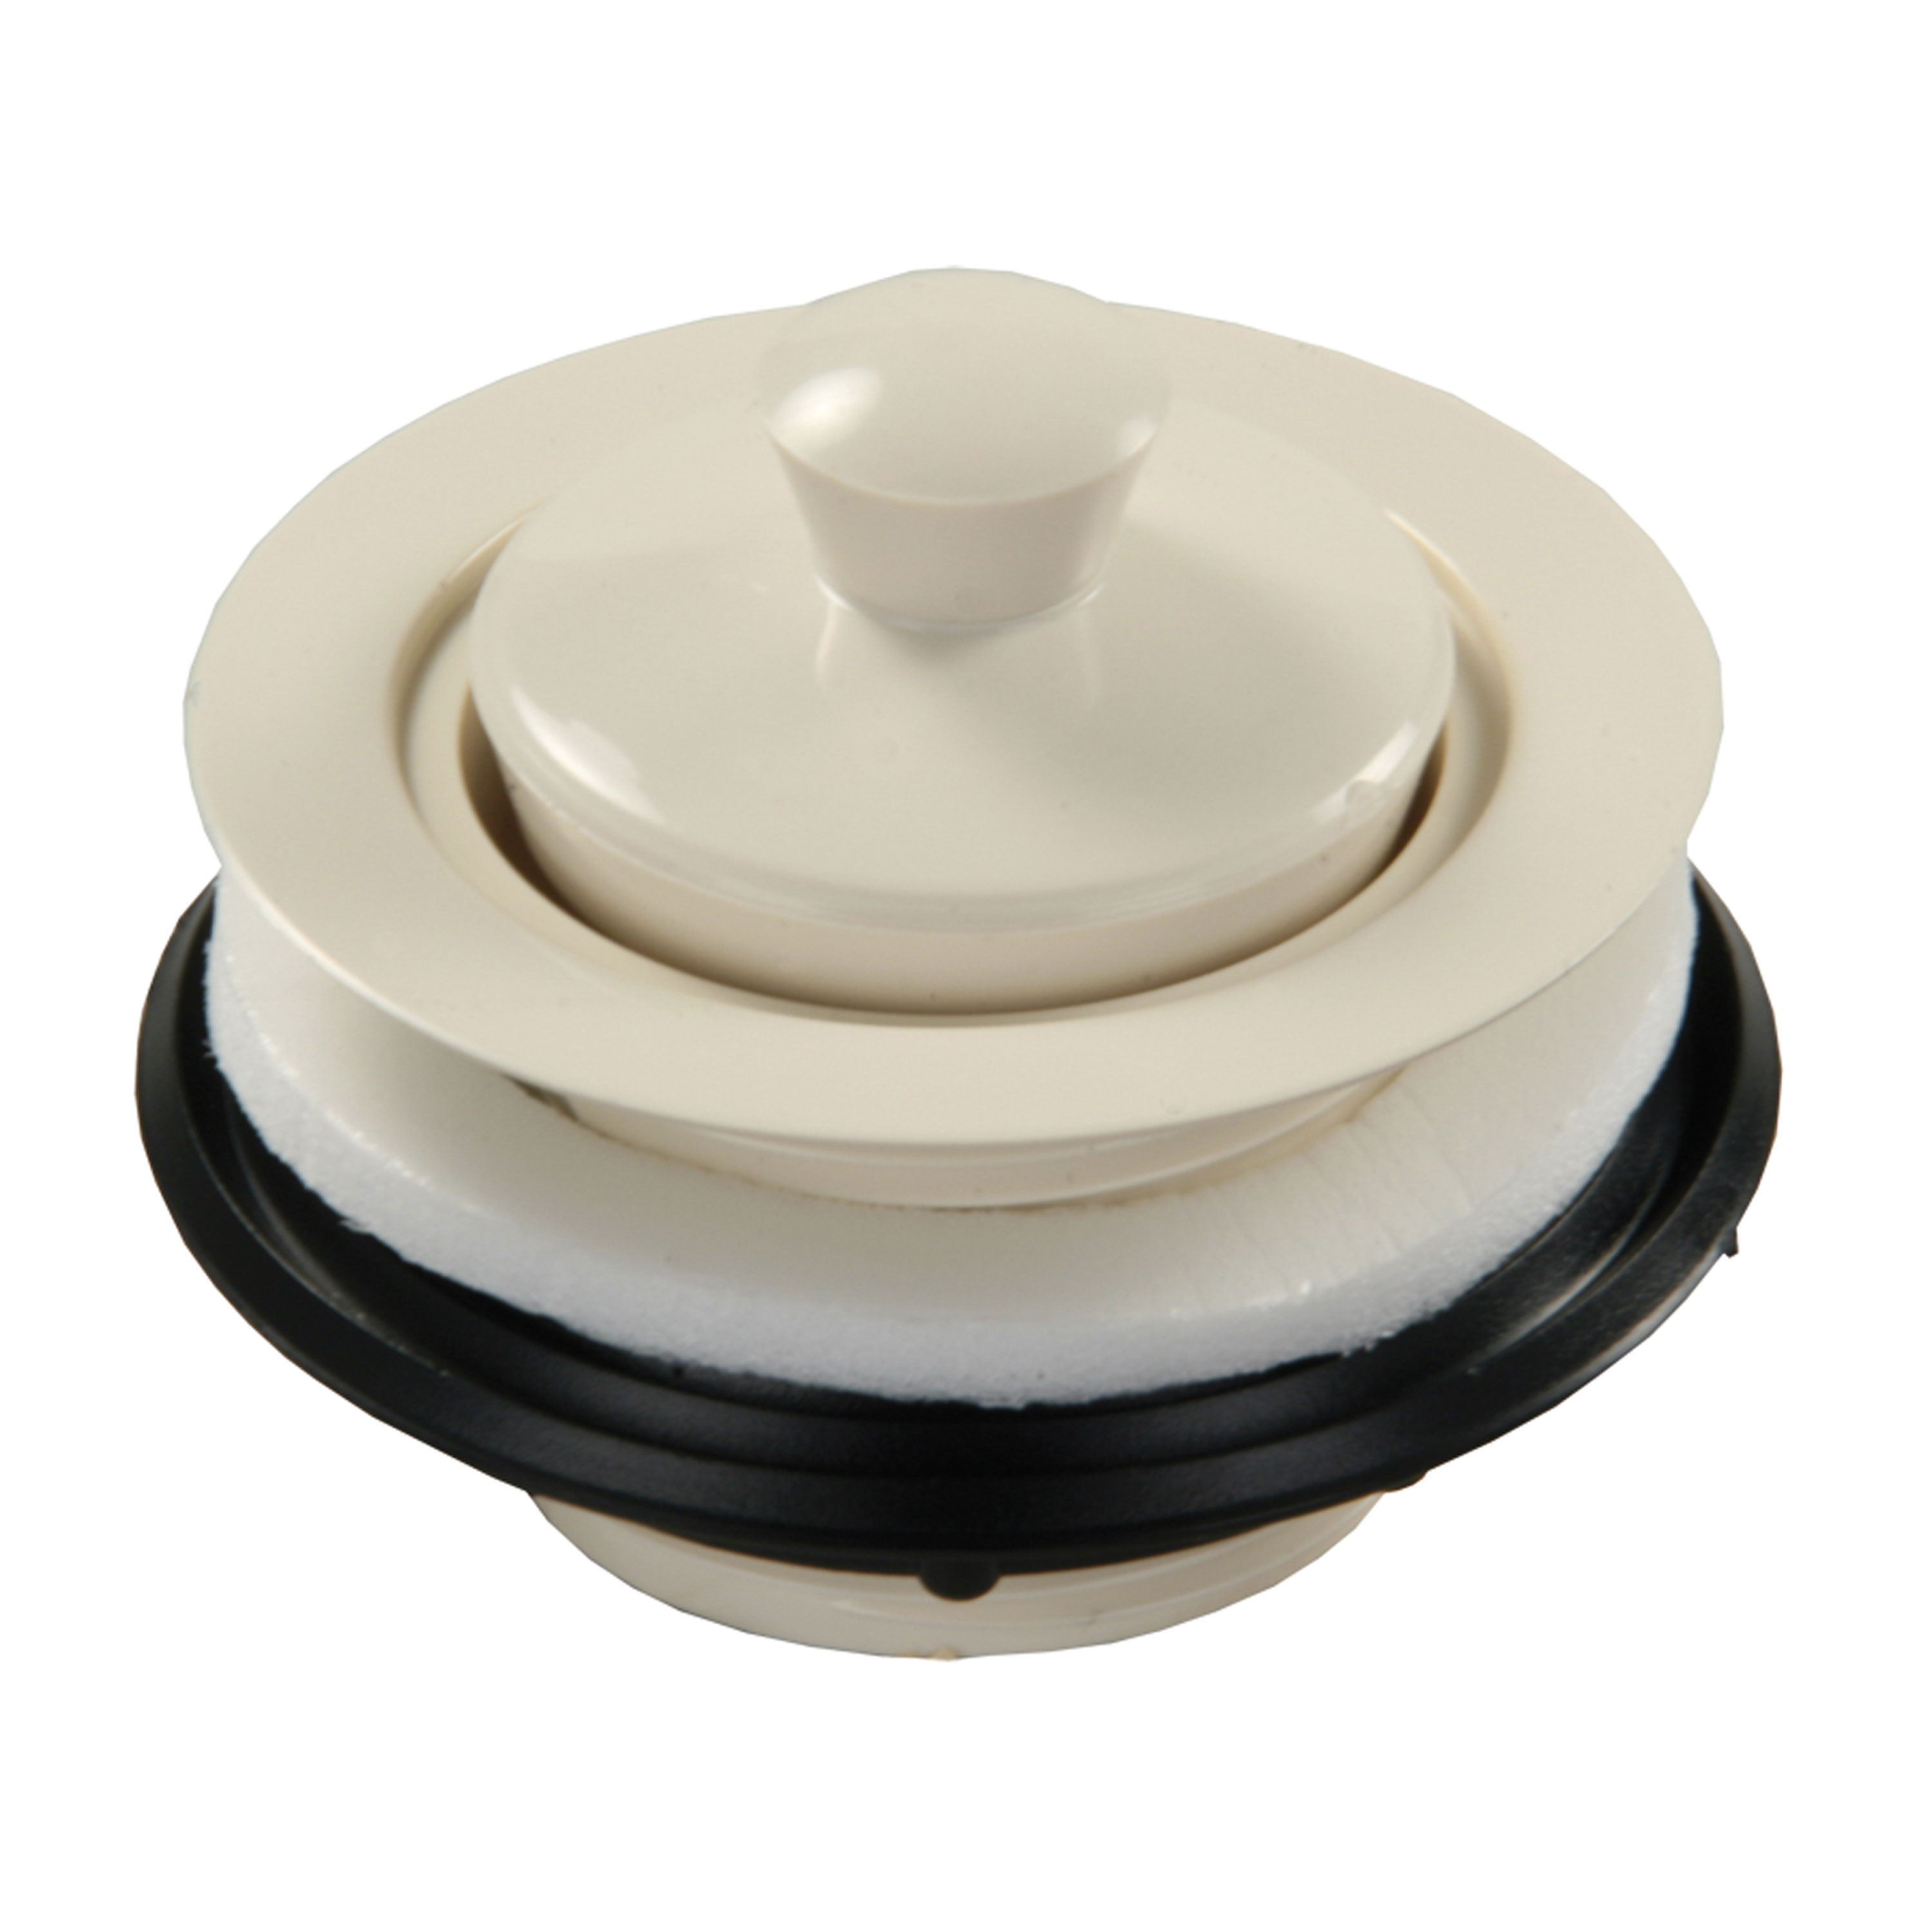 JR Products 95115 Strainer with Pop-Up Stopper - Parchment